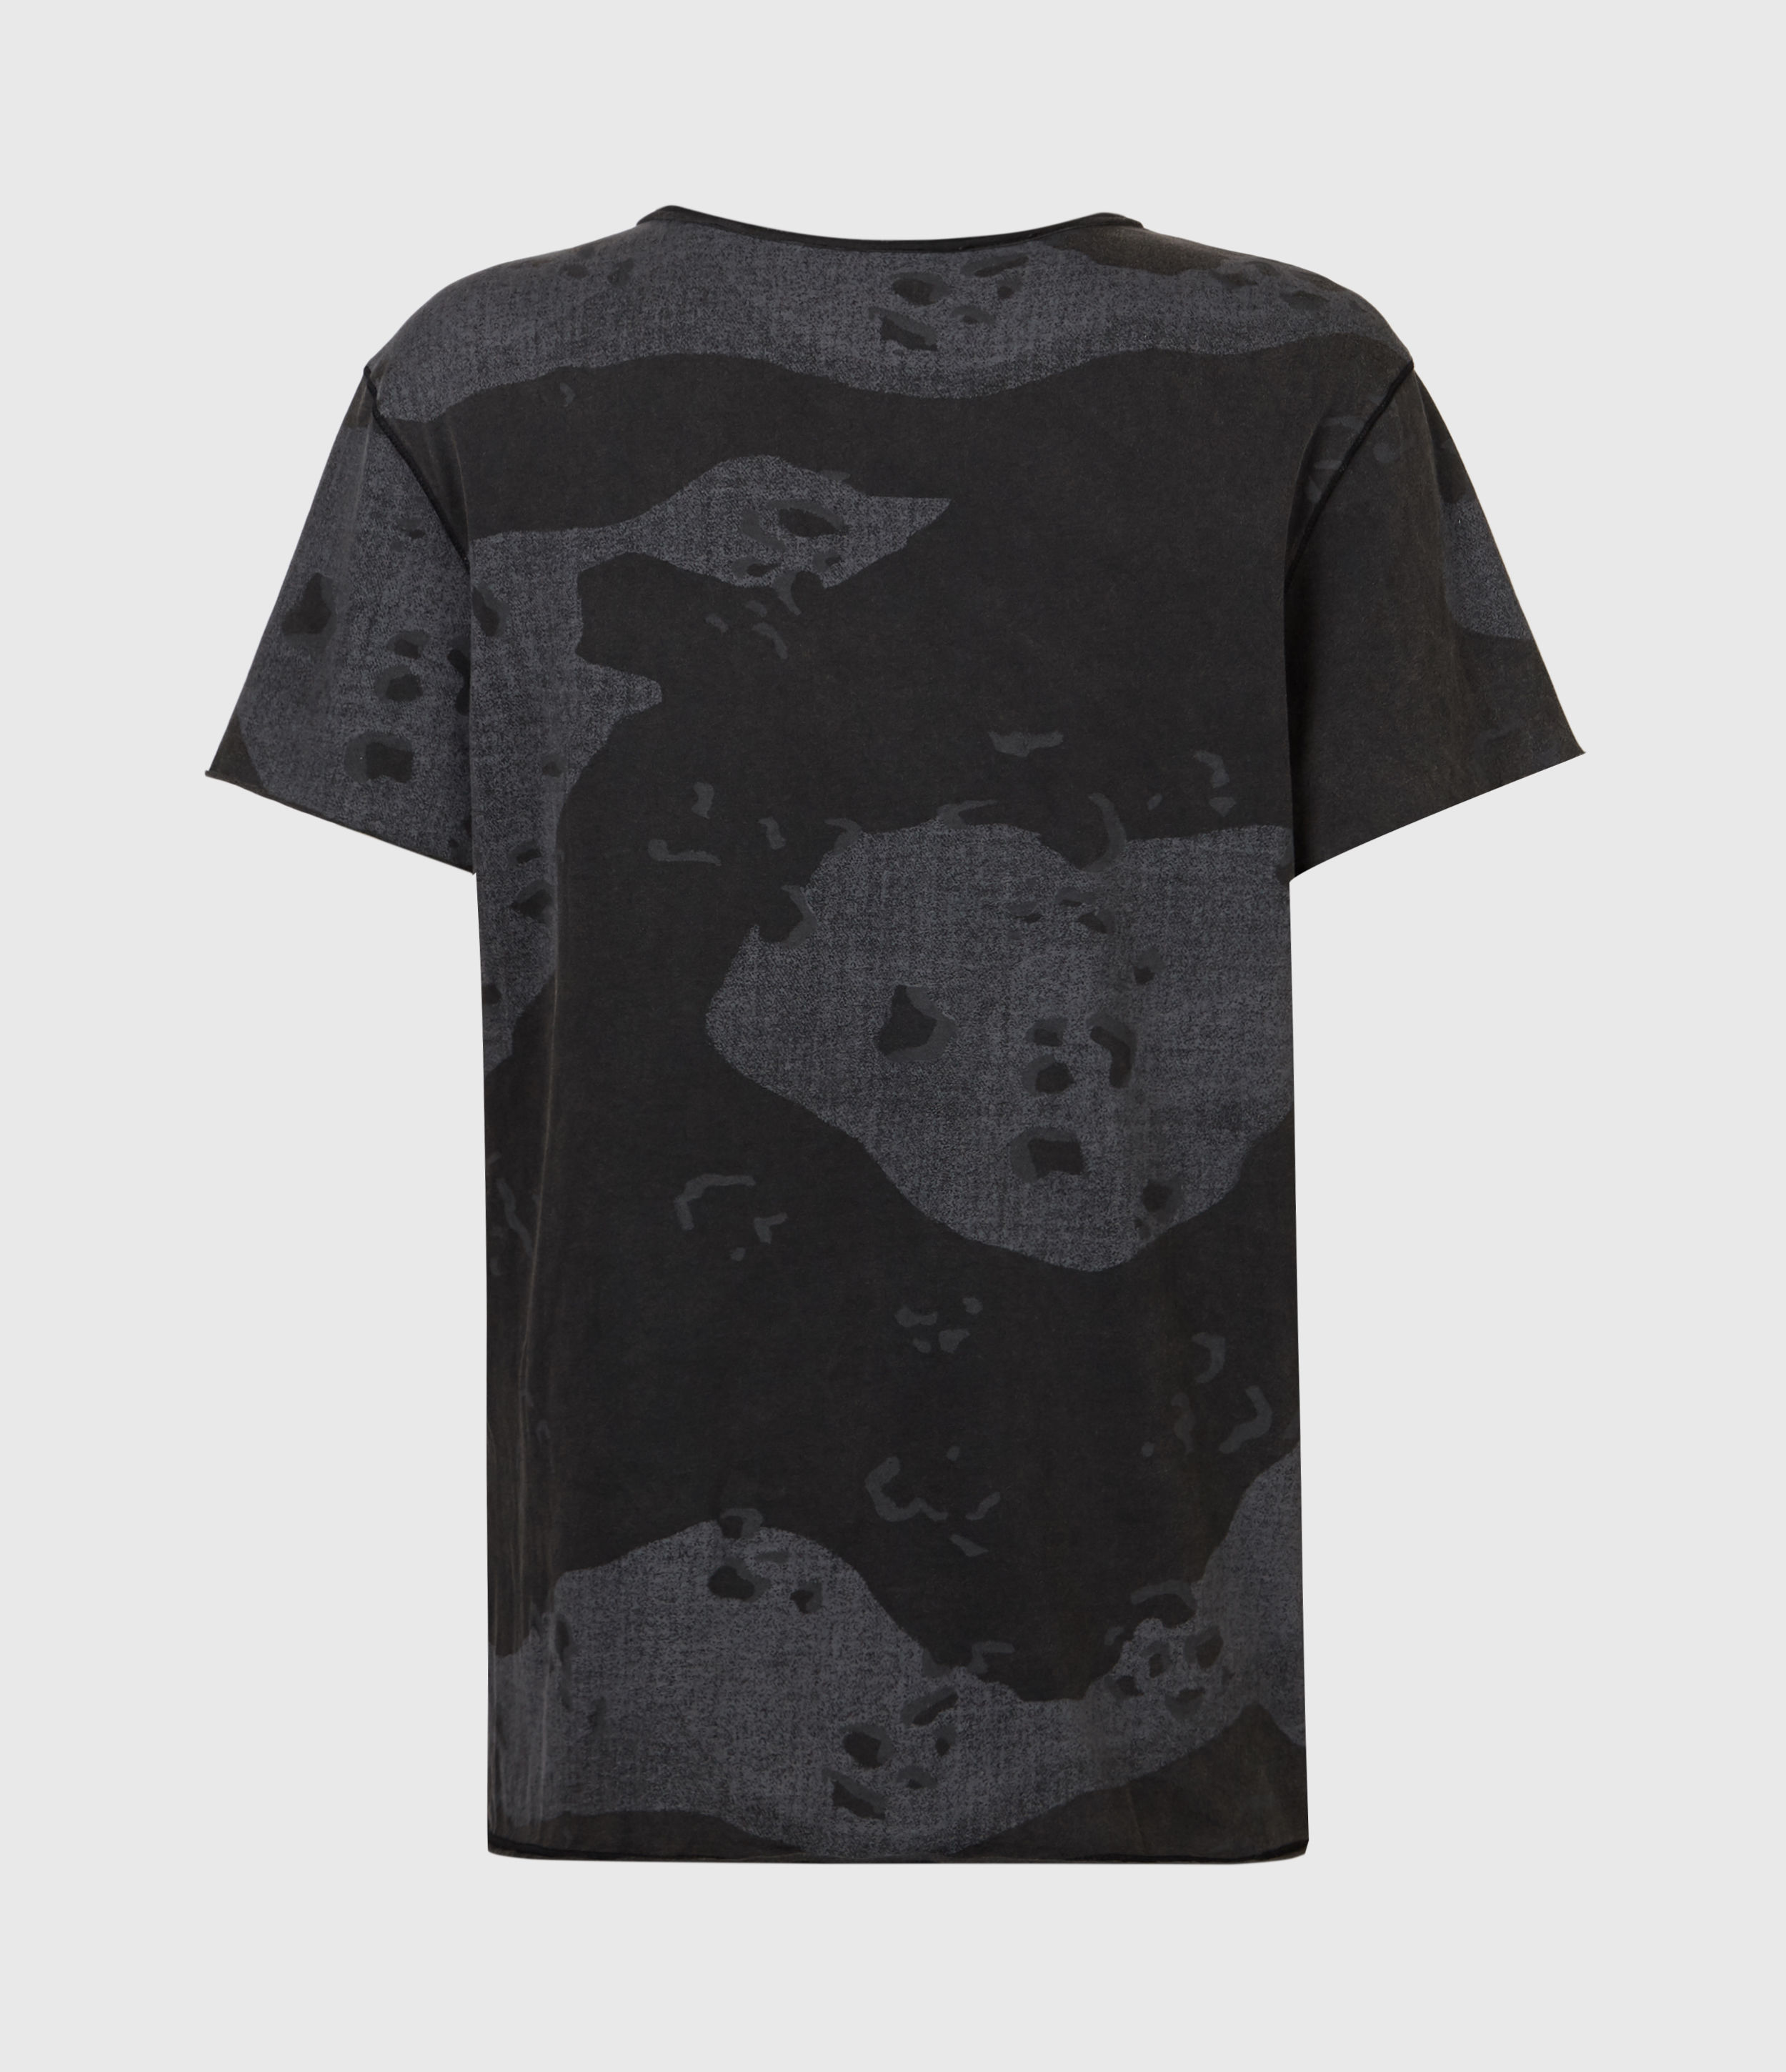 AllSaints Acoustic Emelyn T-Shirt